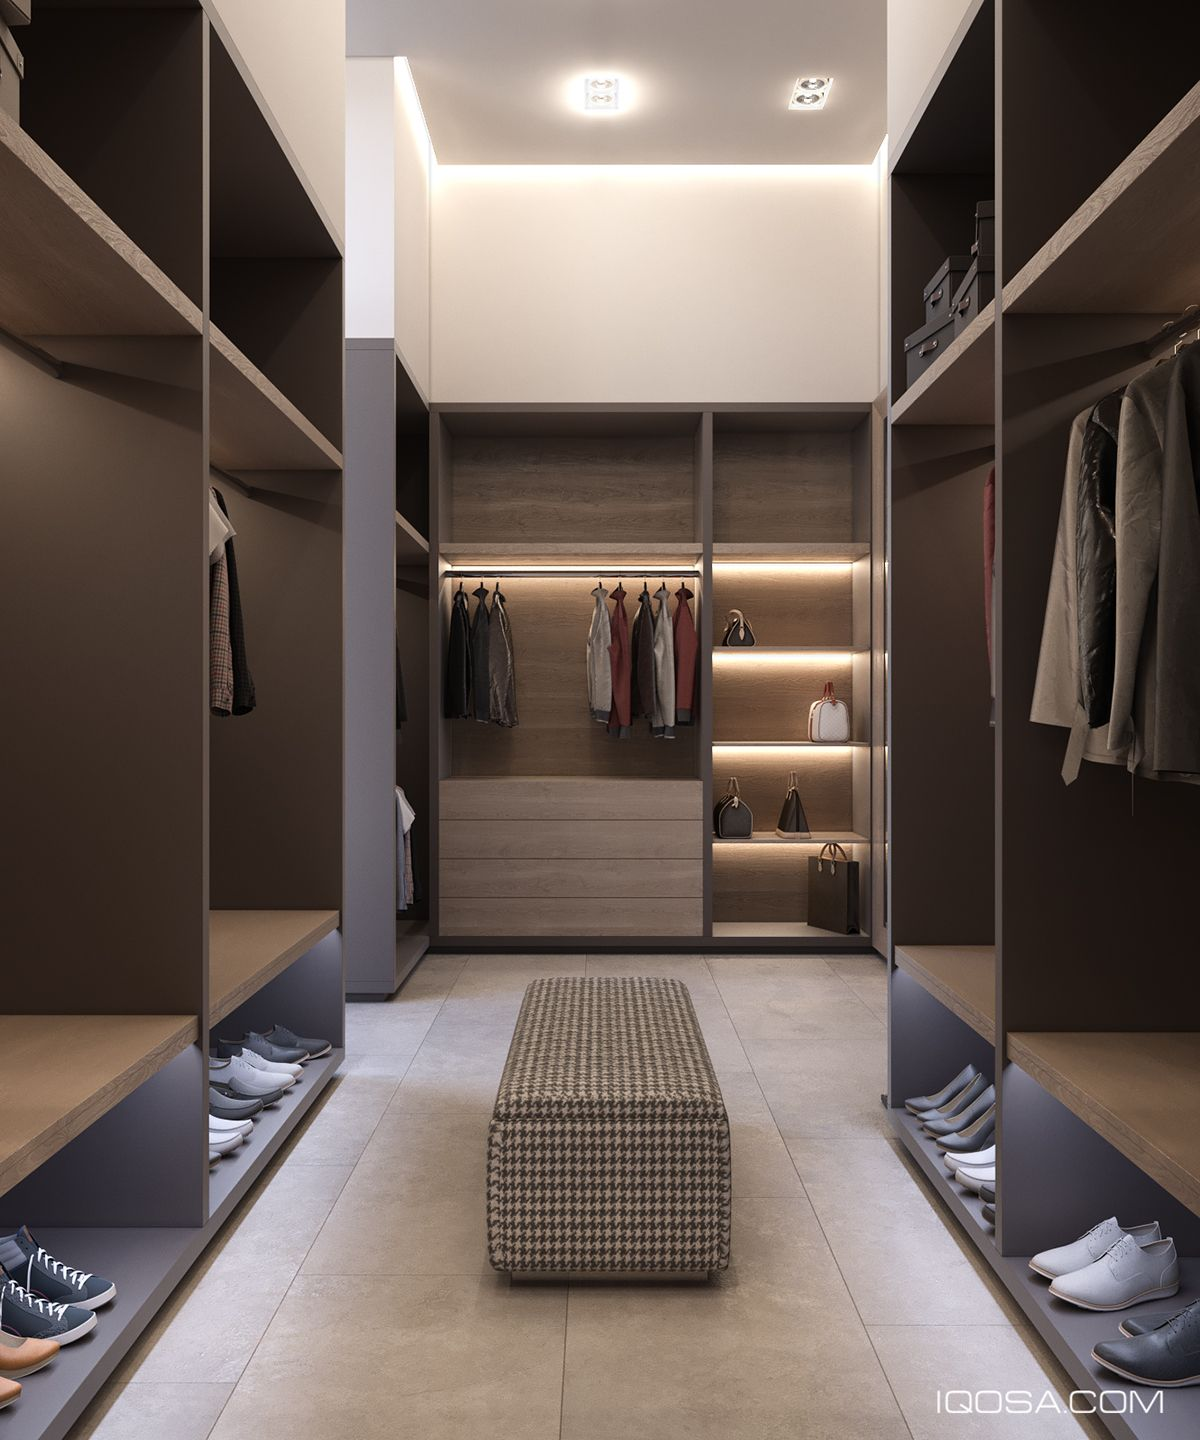 Elegant Walk In Closet Ideas, Walk In Closet Design, Walk In Closet Dimensions, Walk  In Closet Systems, Small Walk In Closet Organization